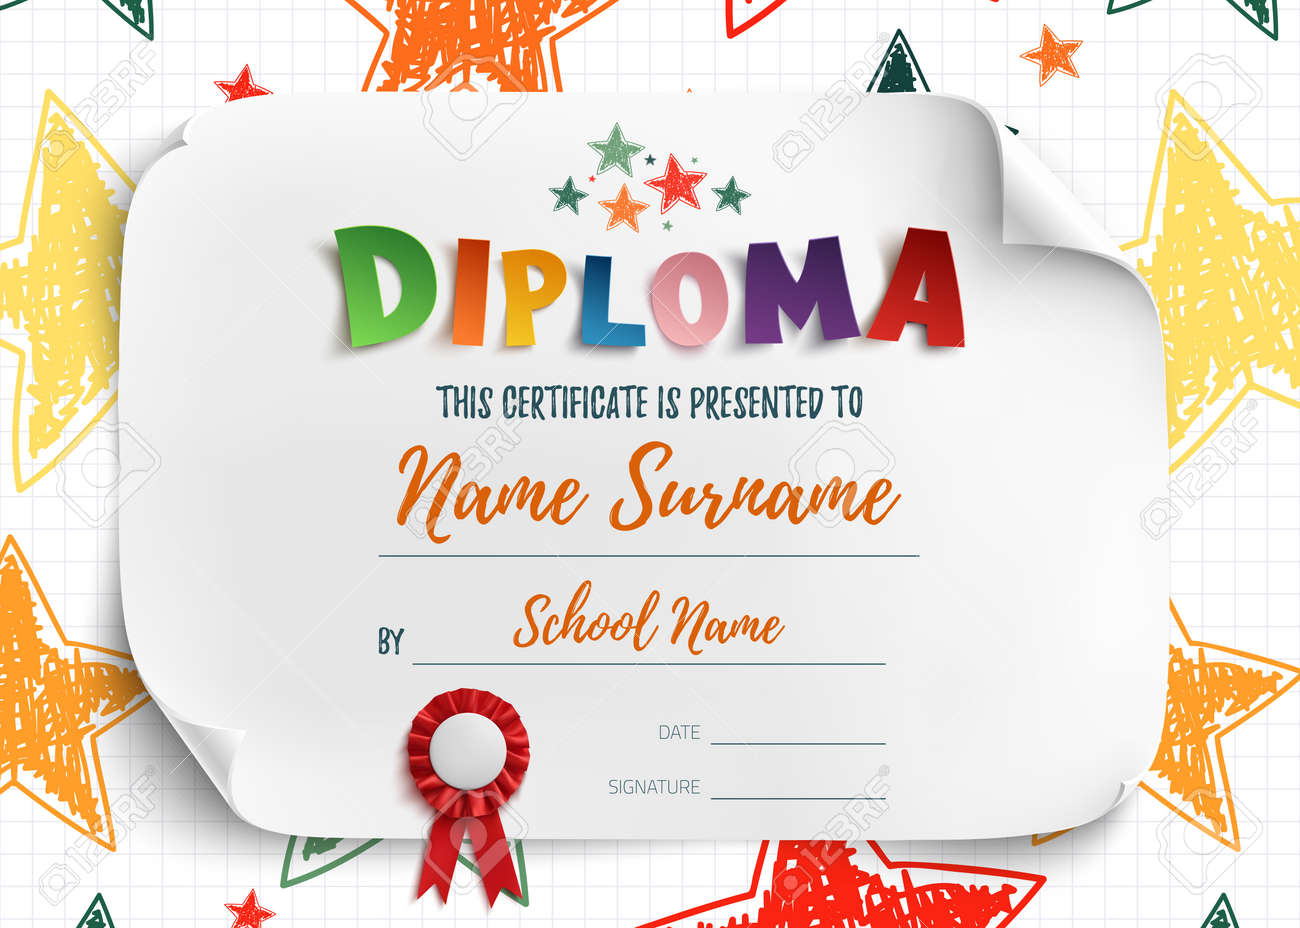 Diploma Template For Kids Certificate Background With Hand Drawn